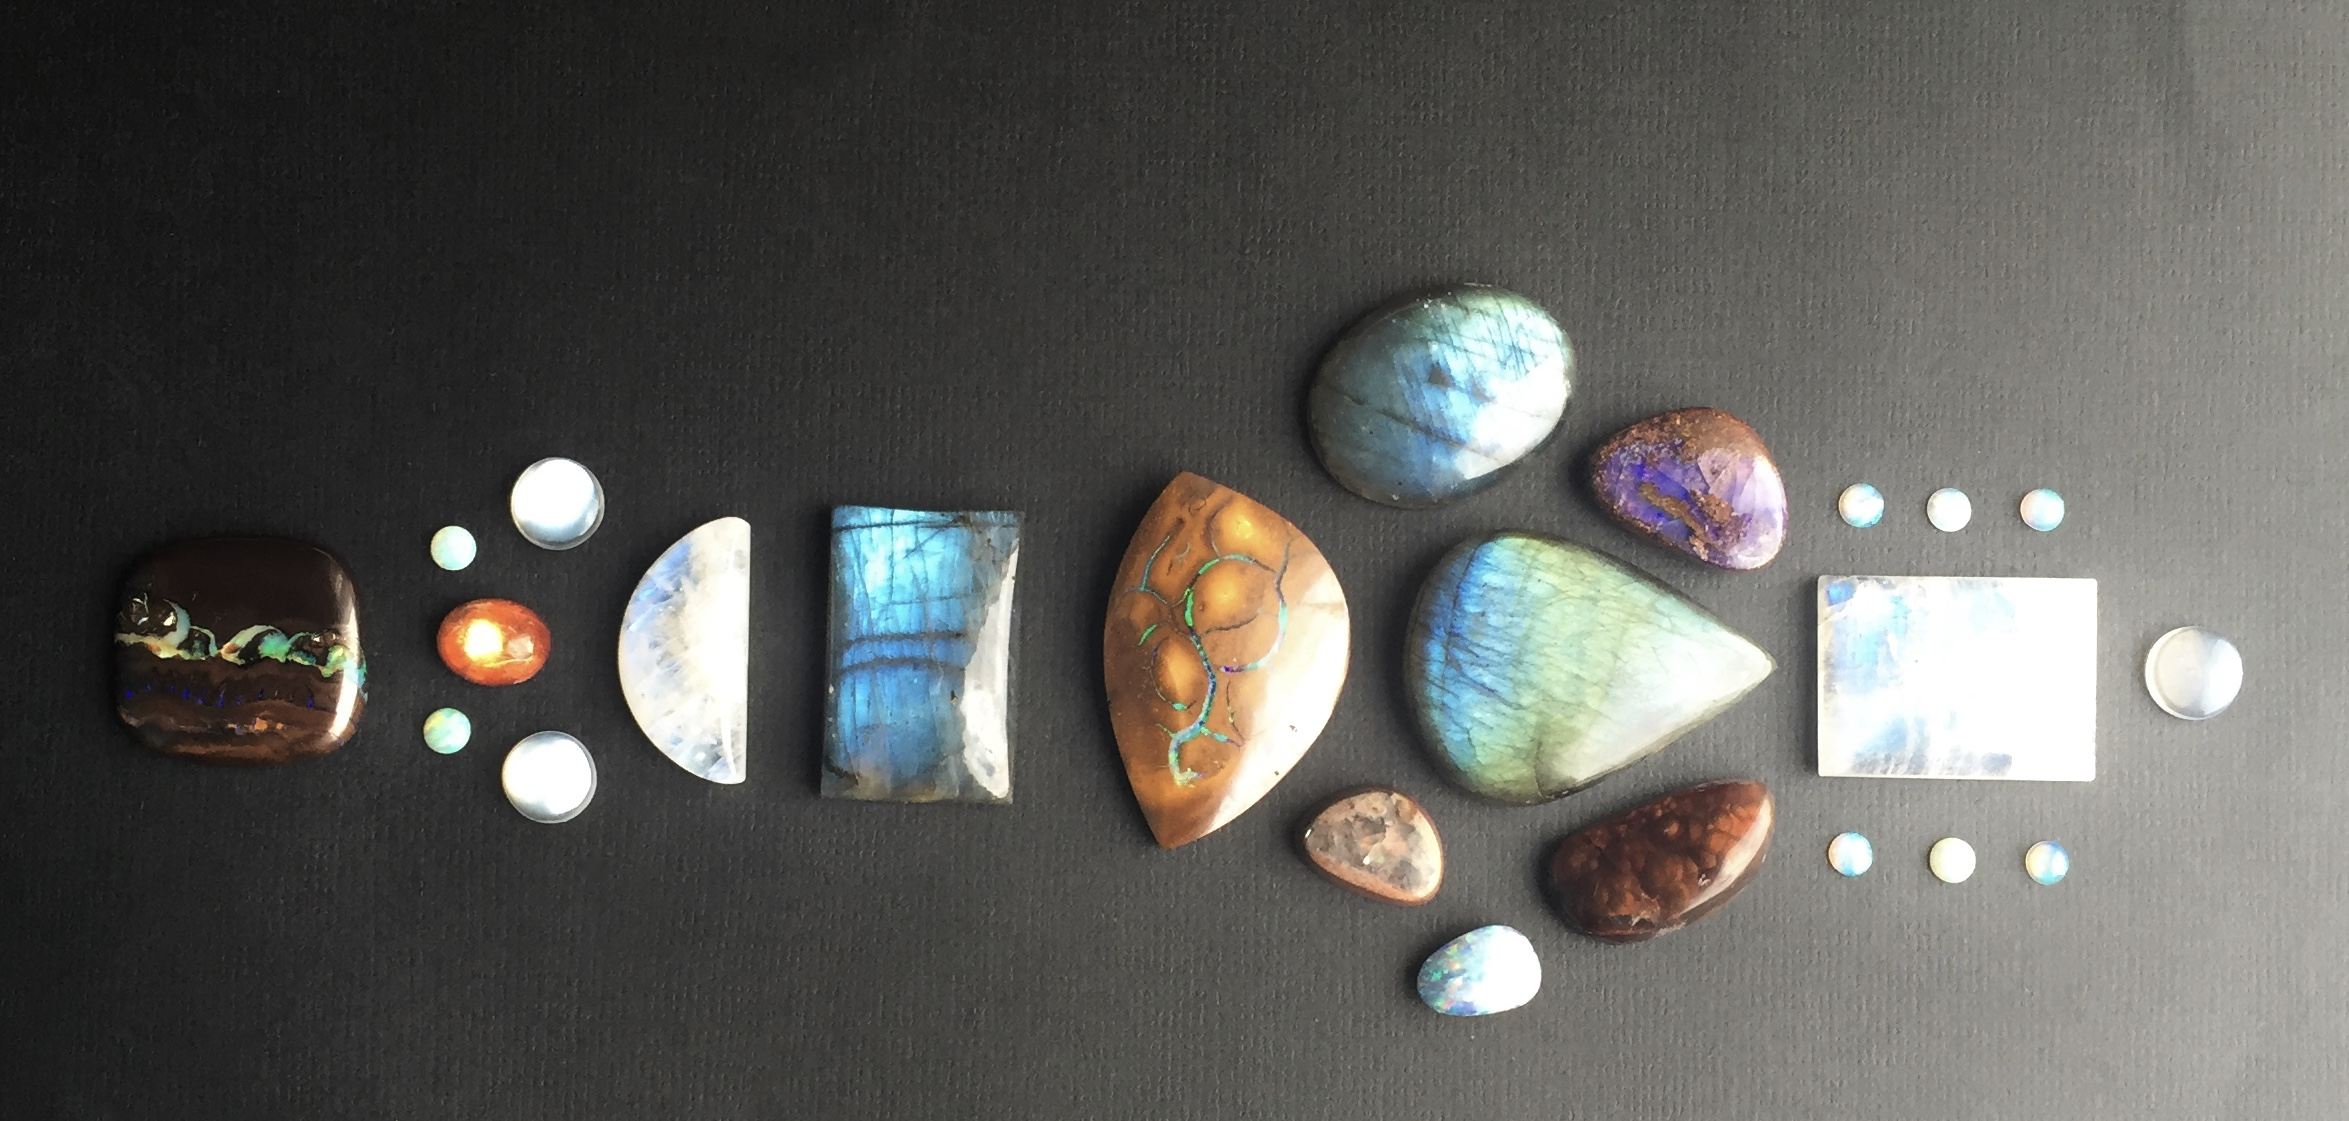 Labradorite, Moonstone, Sunstone, Australian Opal and Boulder Opal Cabochons waiting to be set in my handfabricated sterling silver and 18K gold jewelry.